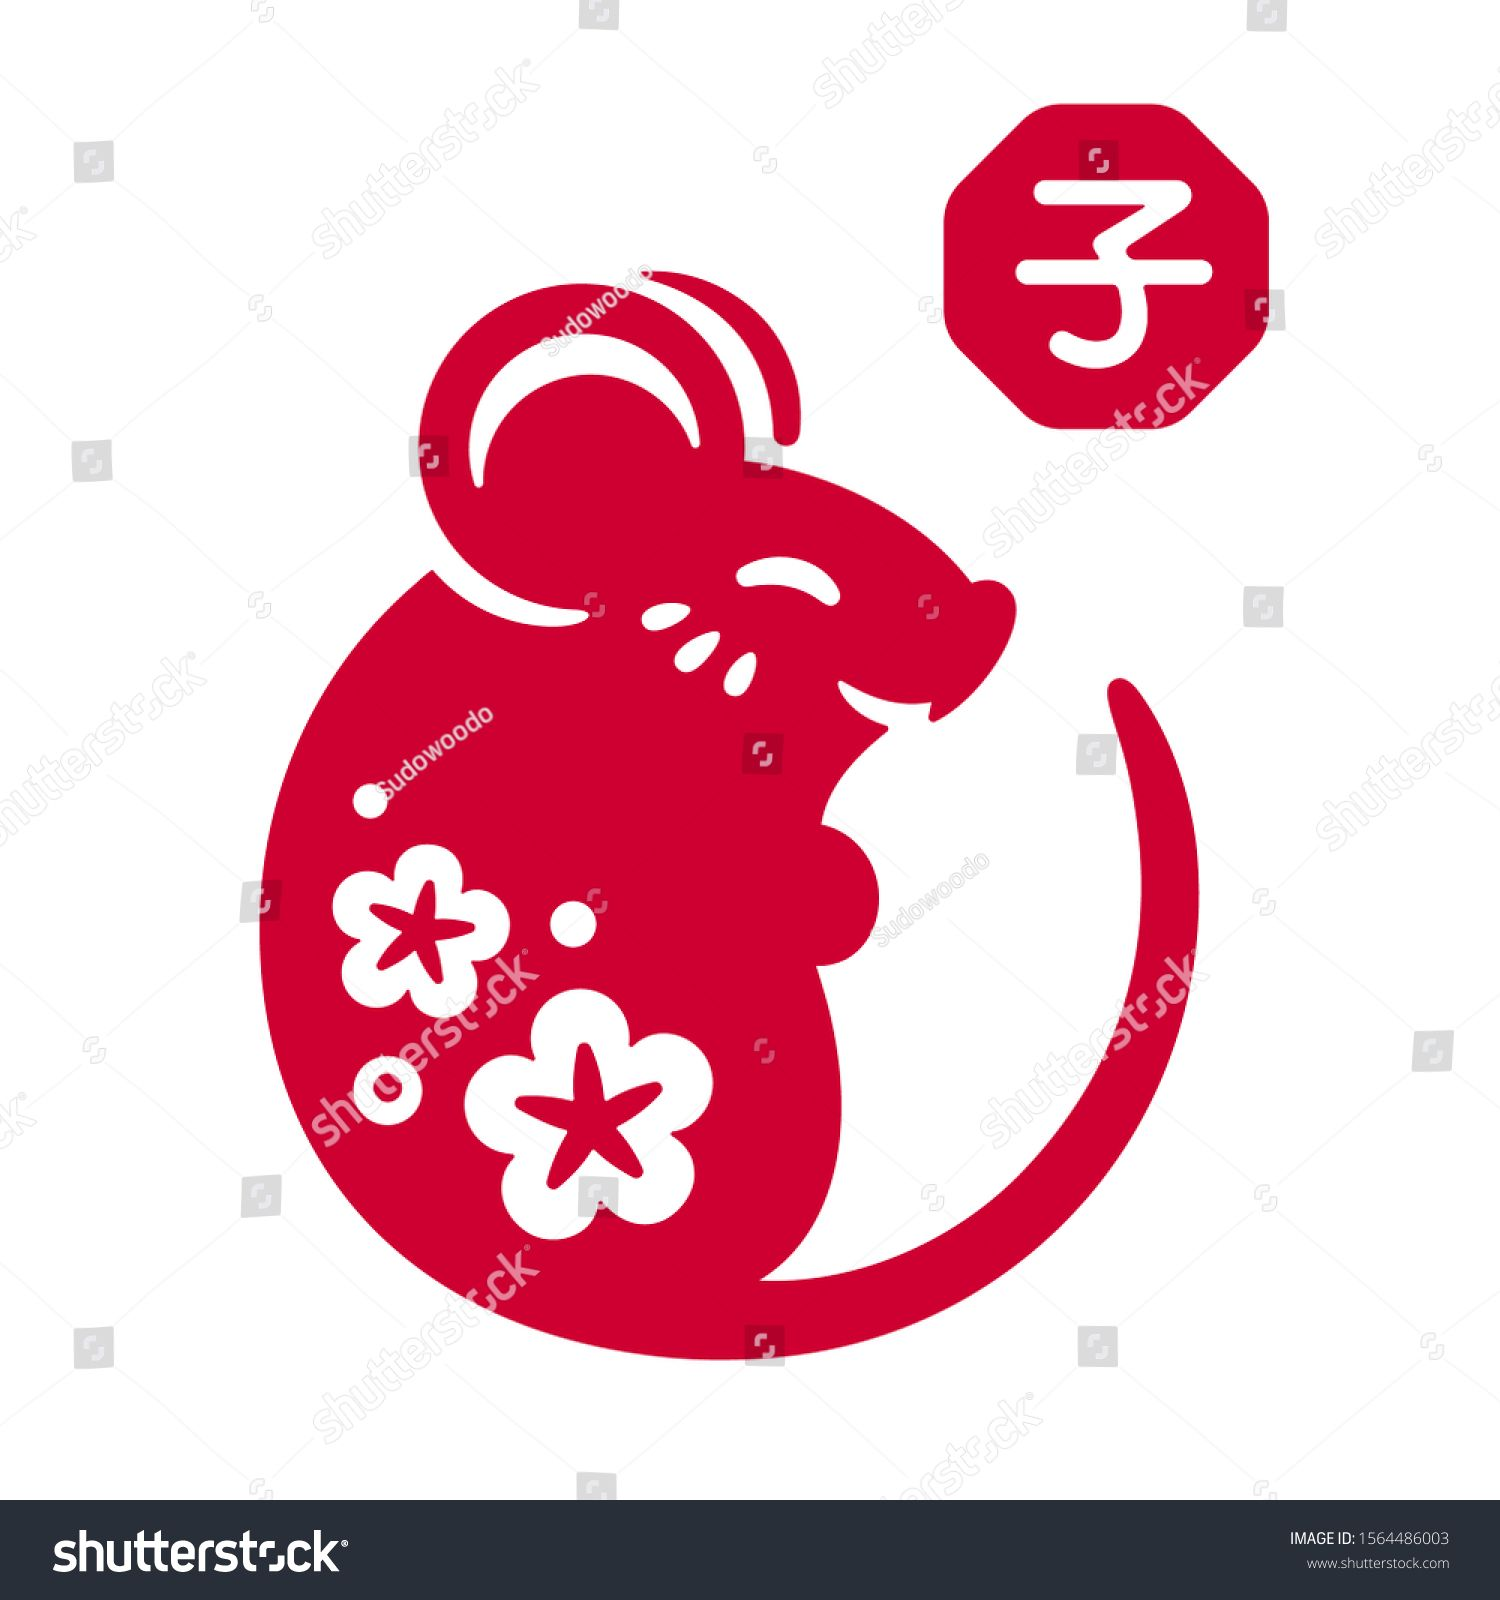 2020 Year of the Rat Chinese New Year zodiac sign. Cute